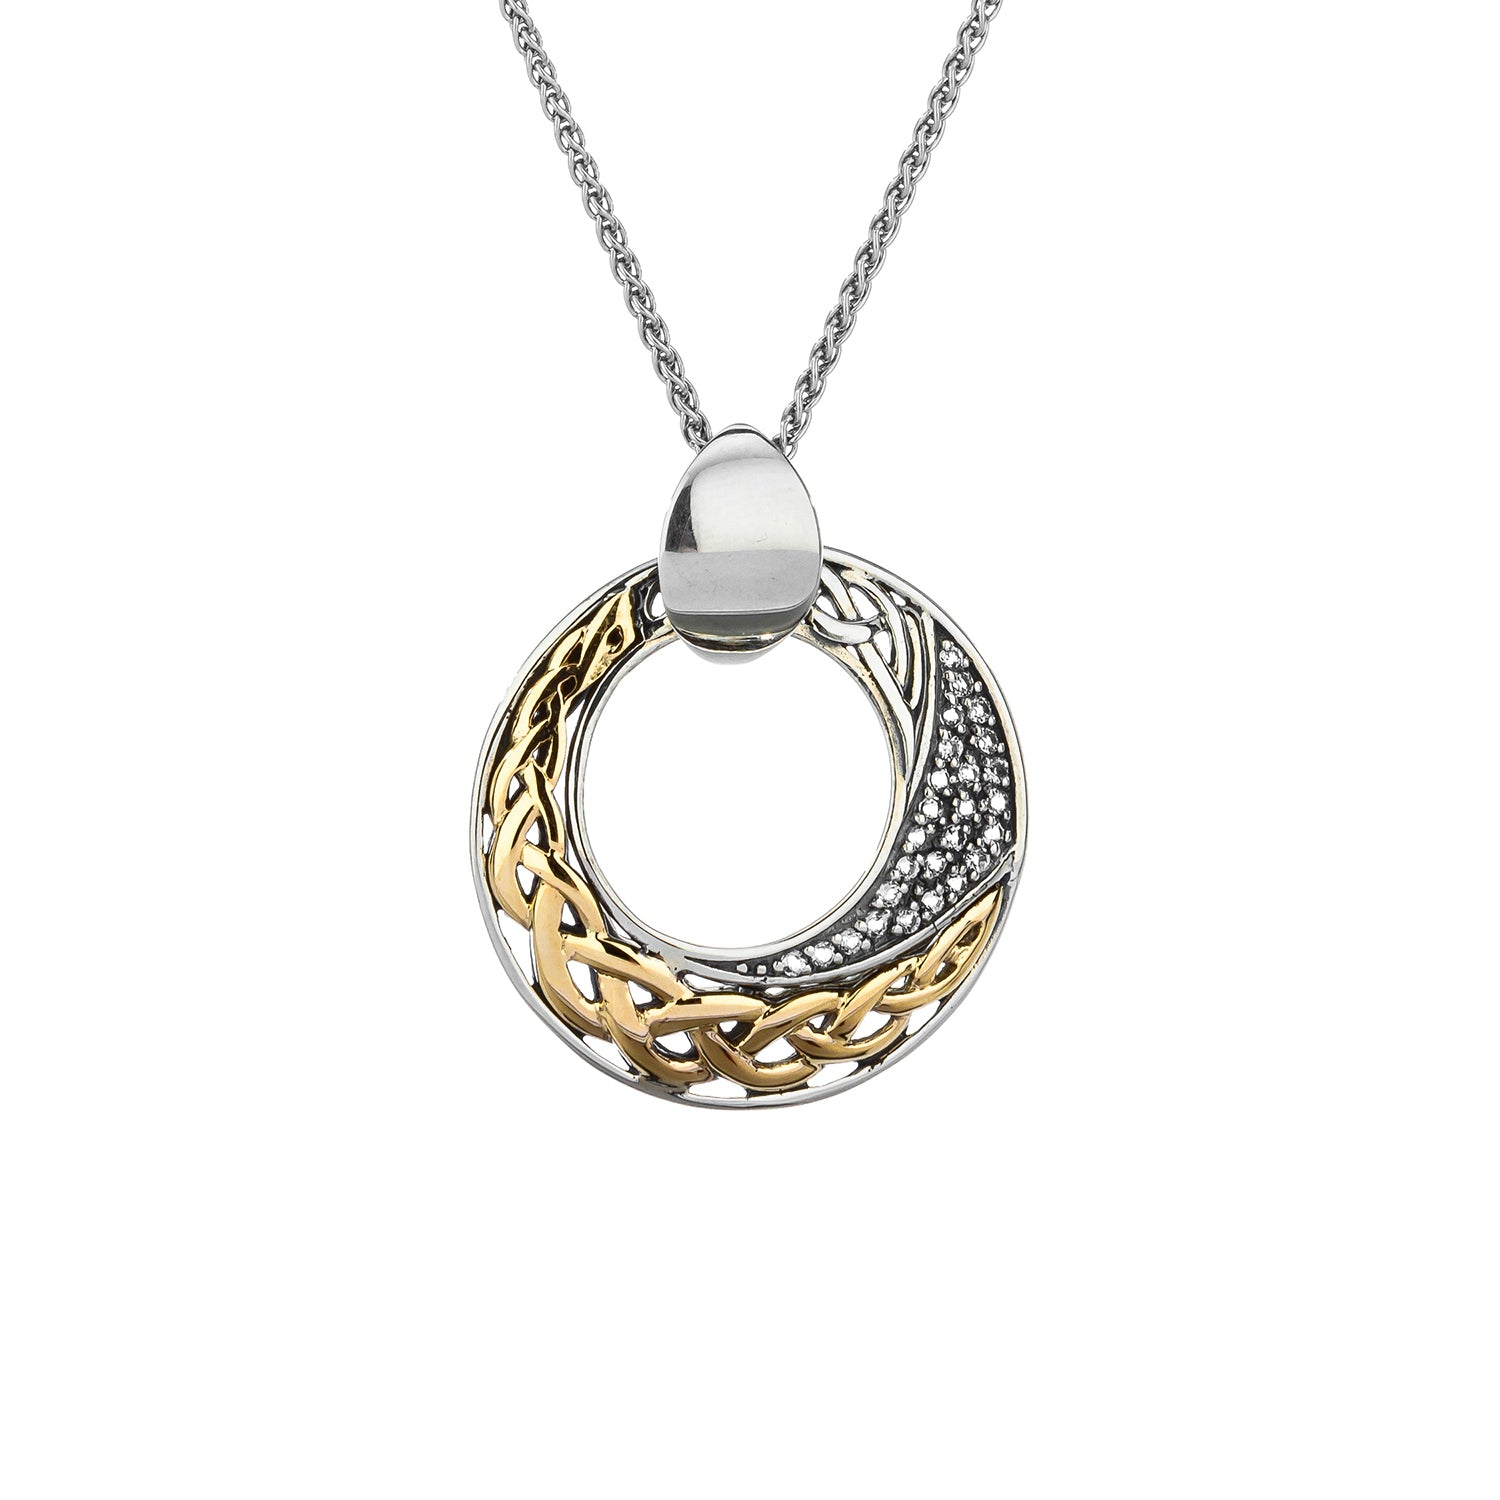 Pendant 10k Comet White Topaz Pendant with Gold Eternity Knot from welch and company jewelers near syracuse ny